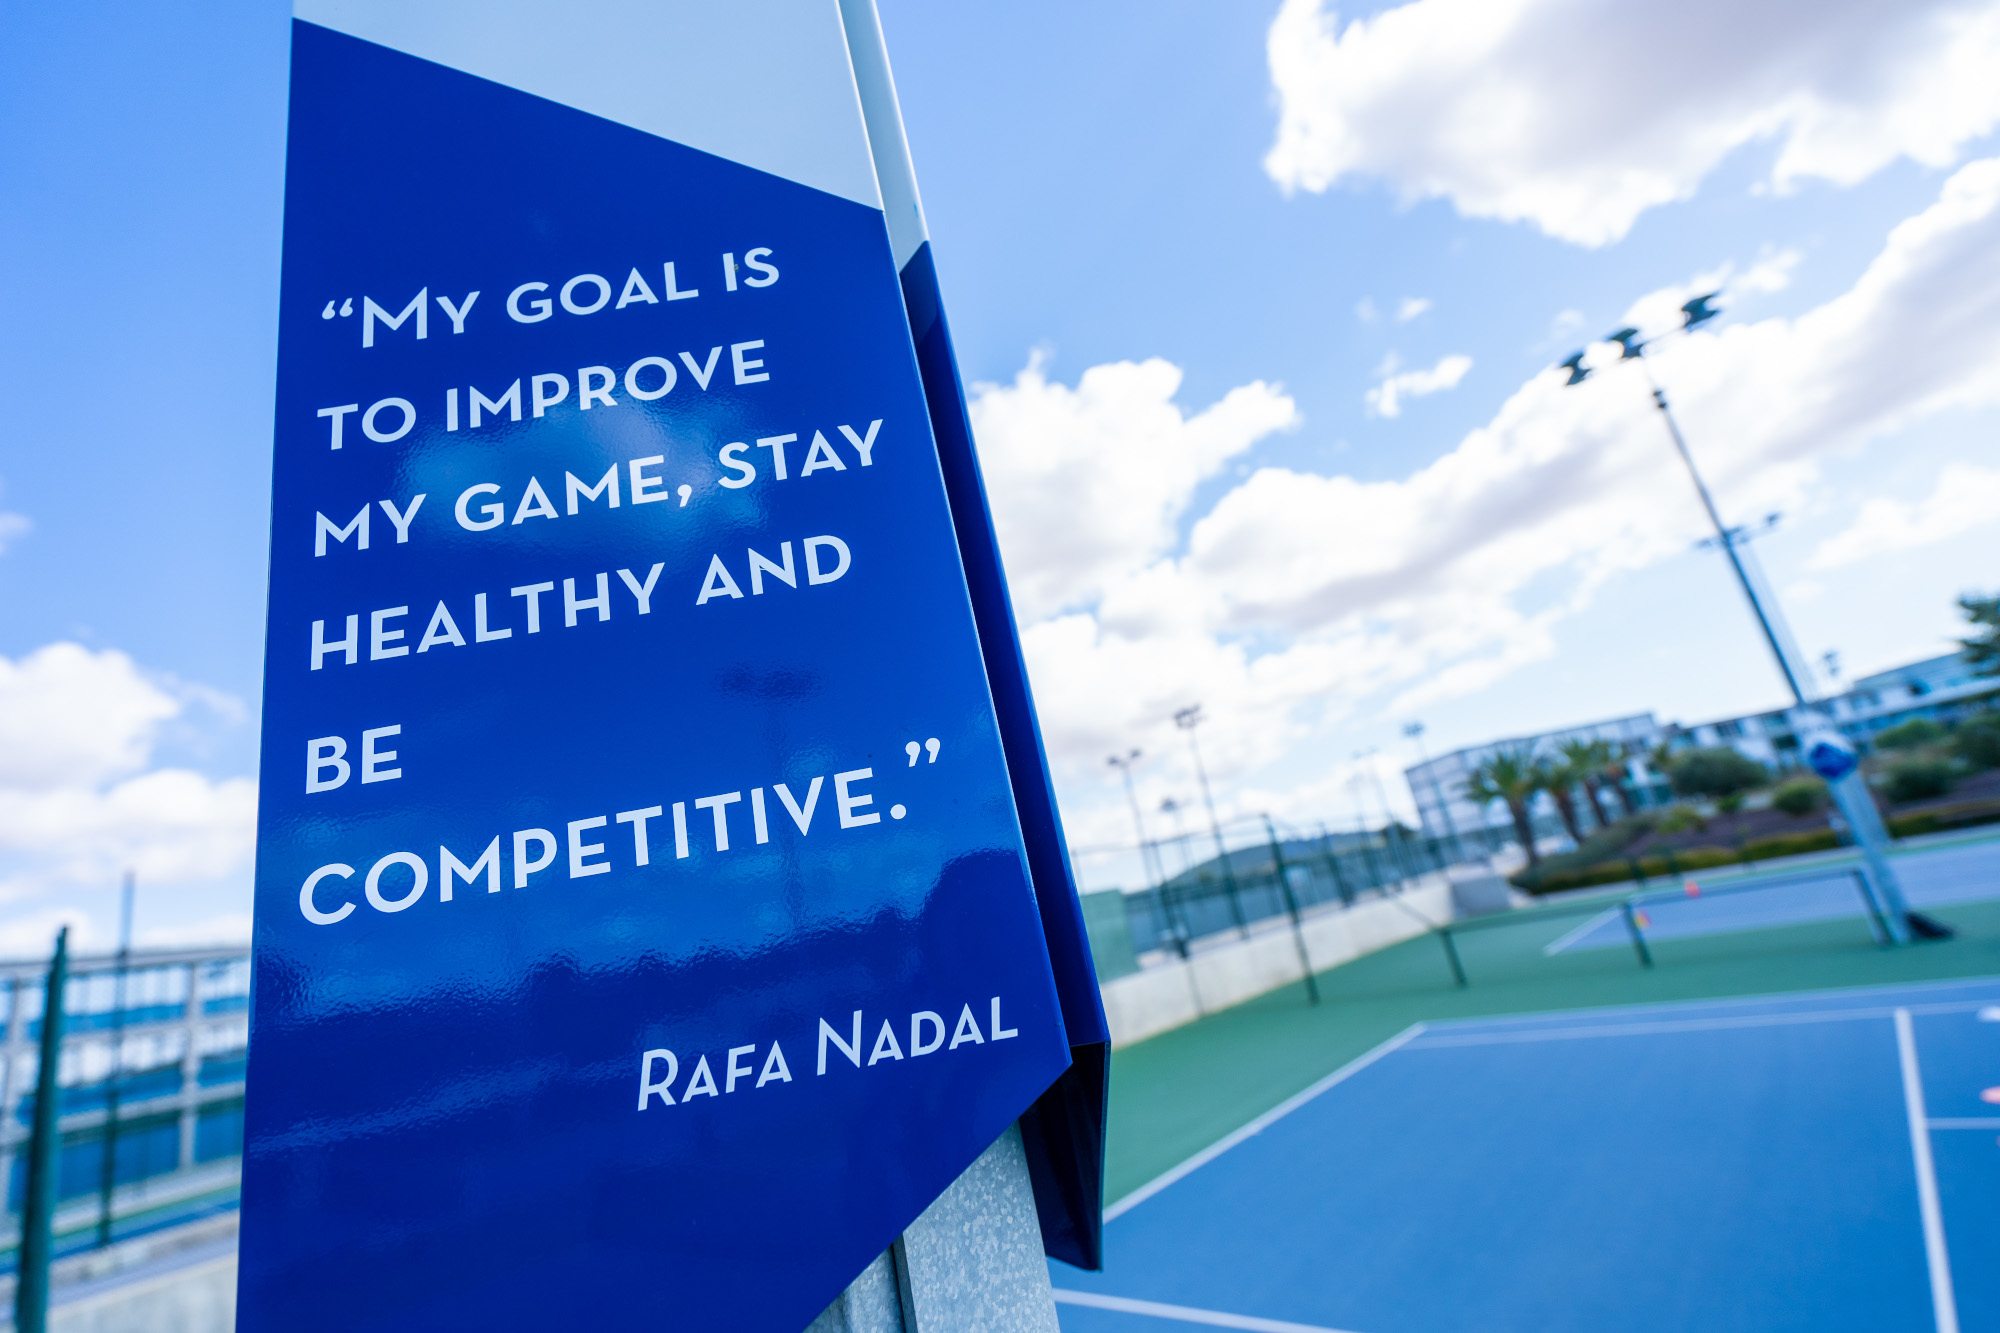 The Rafa Nadal Academy by Movistar, an example of safety, trust and wellbeing